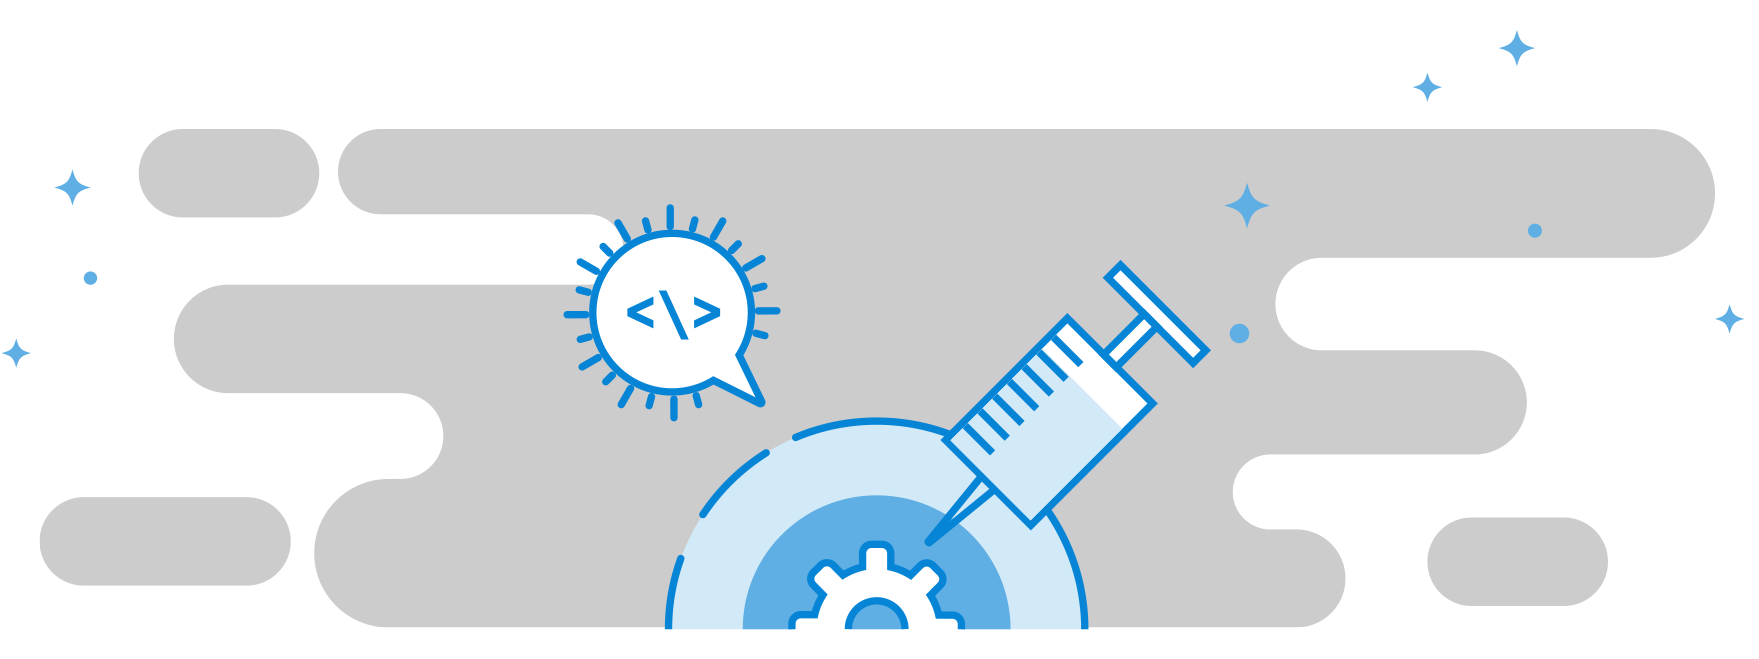 Type annotations in dependency injection